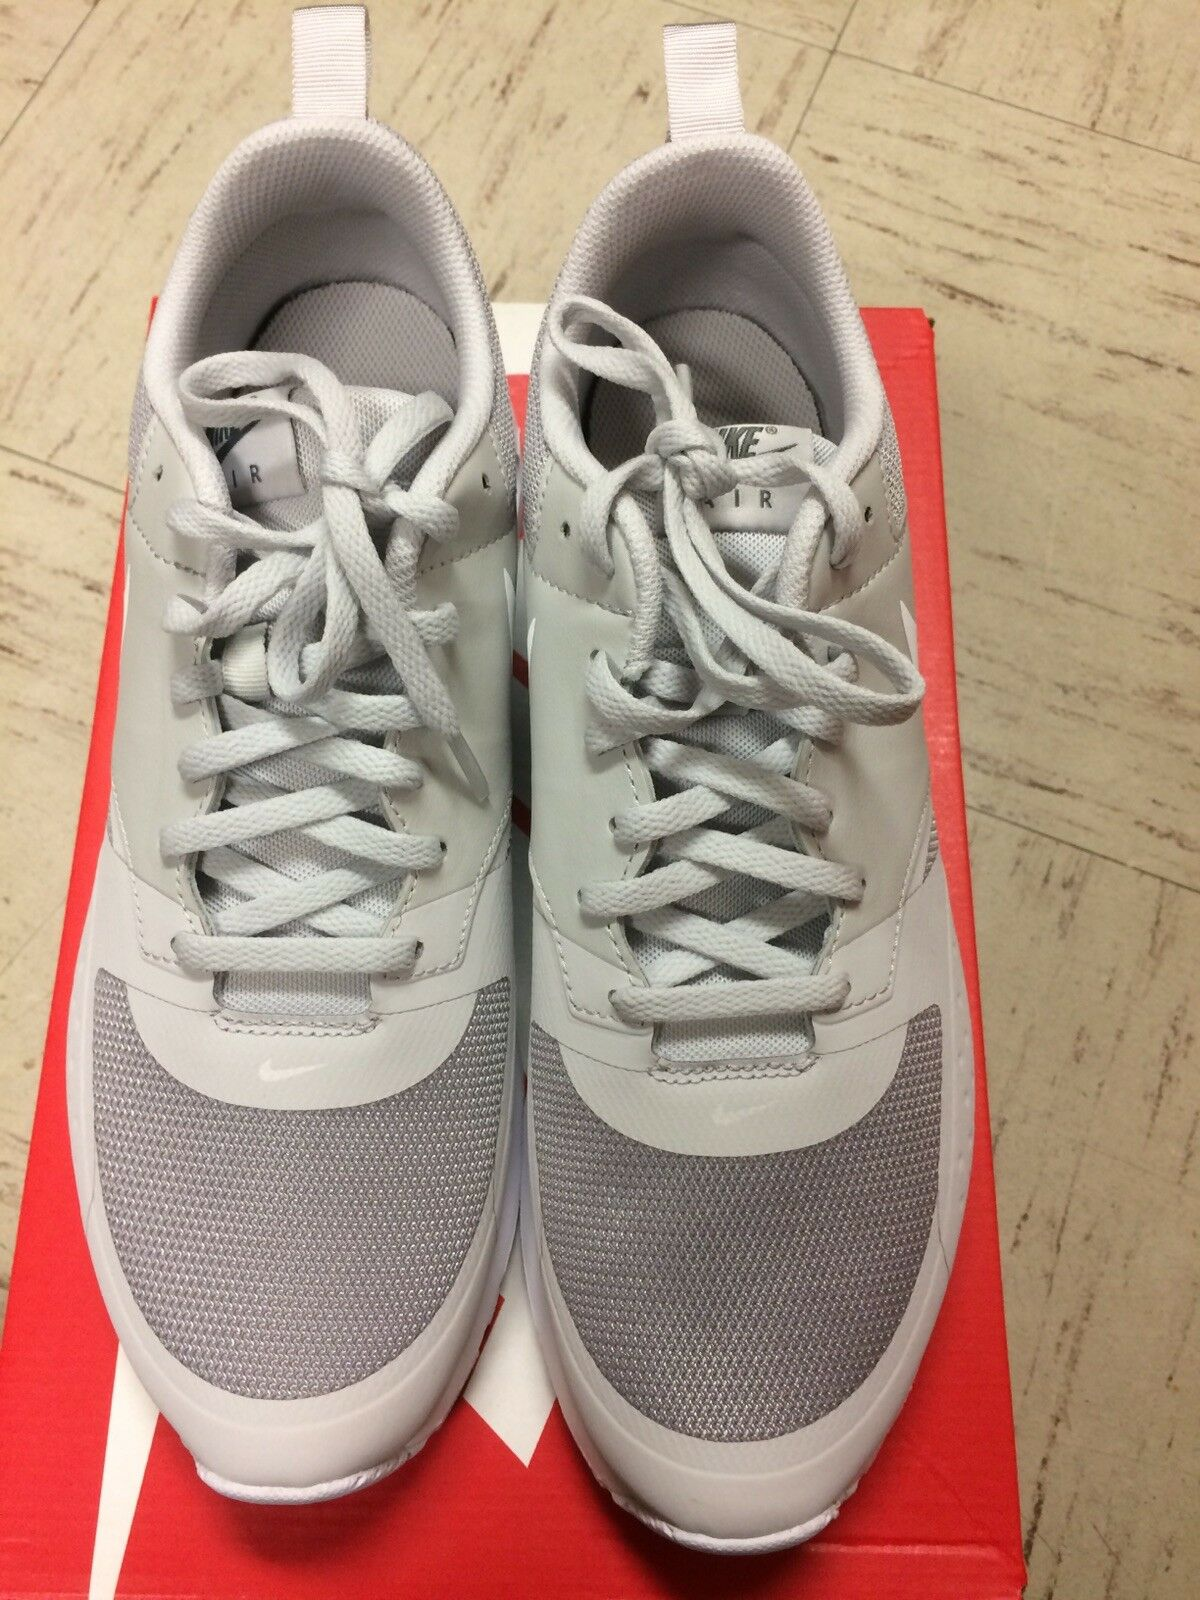 Nike Air Max Vision  Grey White Men's Lifestyle Running shoes NEW  10 sz